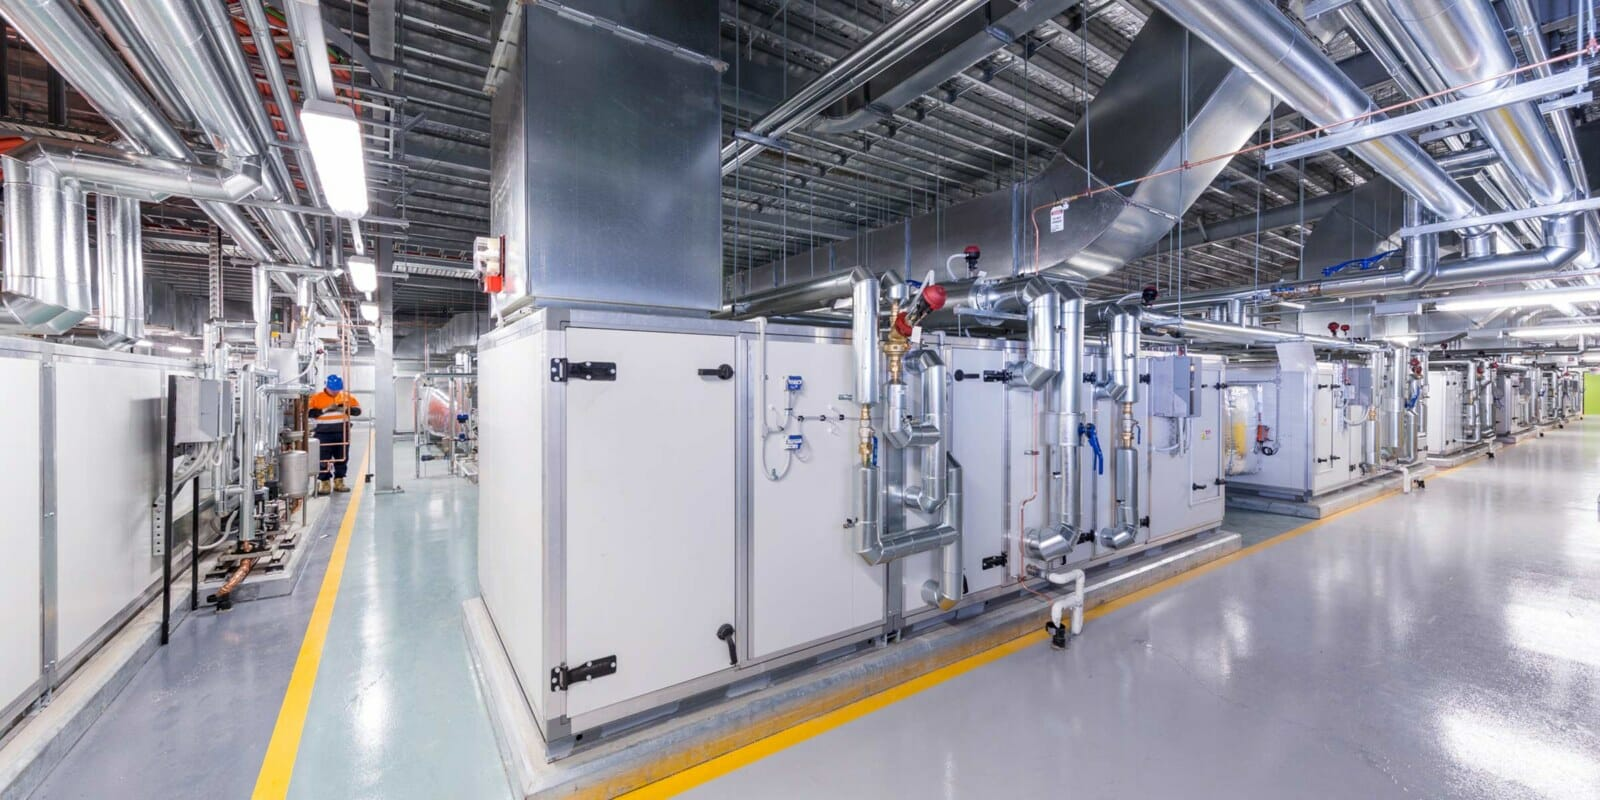 COVID-19 AND HVAC SYSTEMS : Where Are We?